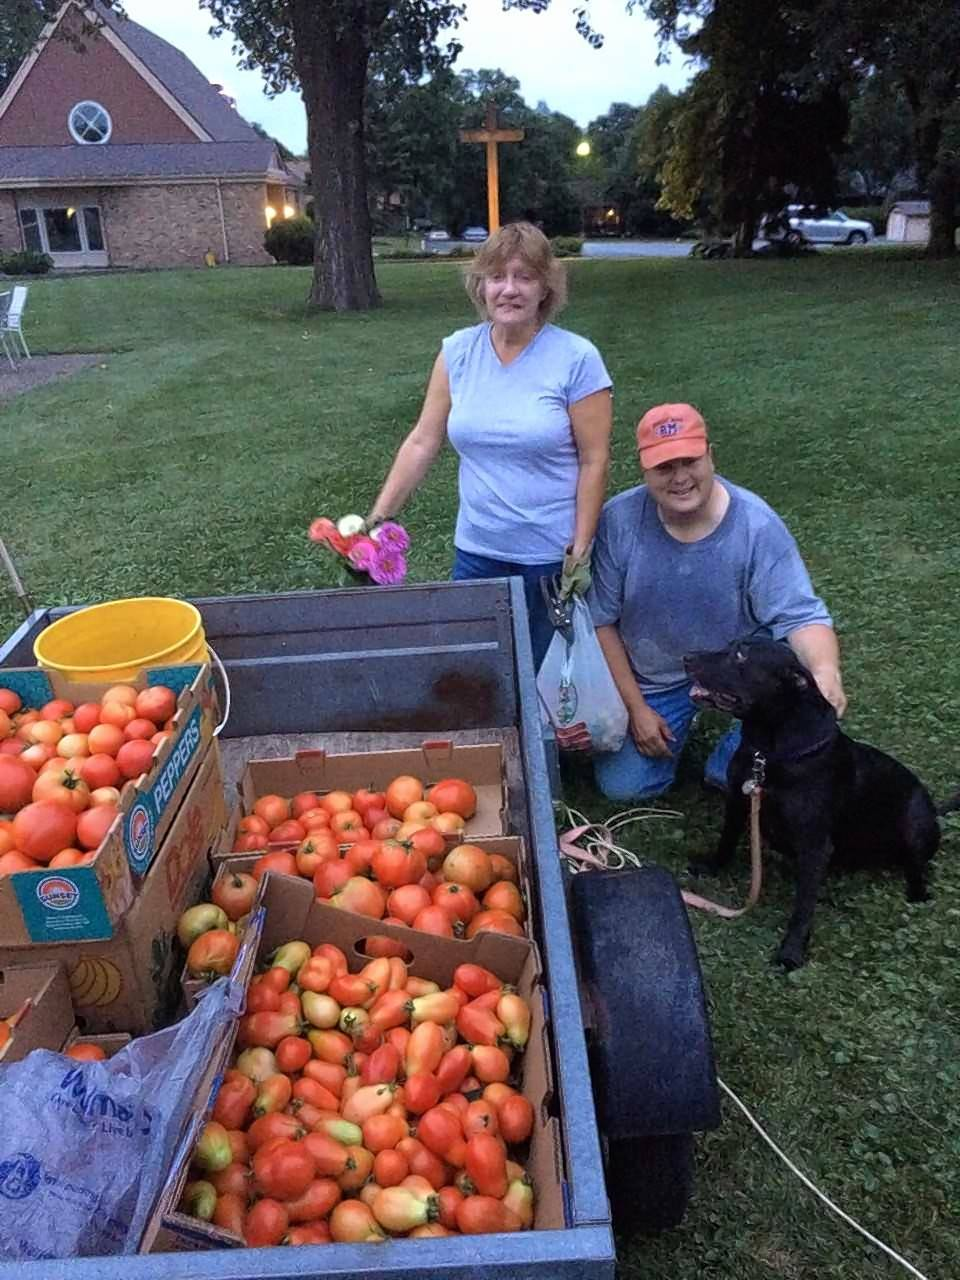 Gardeners B.J. and Kristie Scherer help load some of the harvest from the garden behind the Covenant Church of Schaumburg. Church members turn out every Tuesday night to harvest vegetables, which then are transported on Wednesday to the Schaumburg Township Food Pantry.